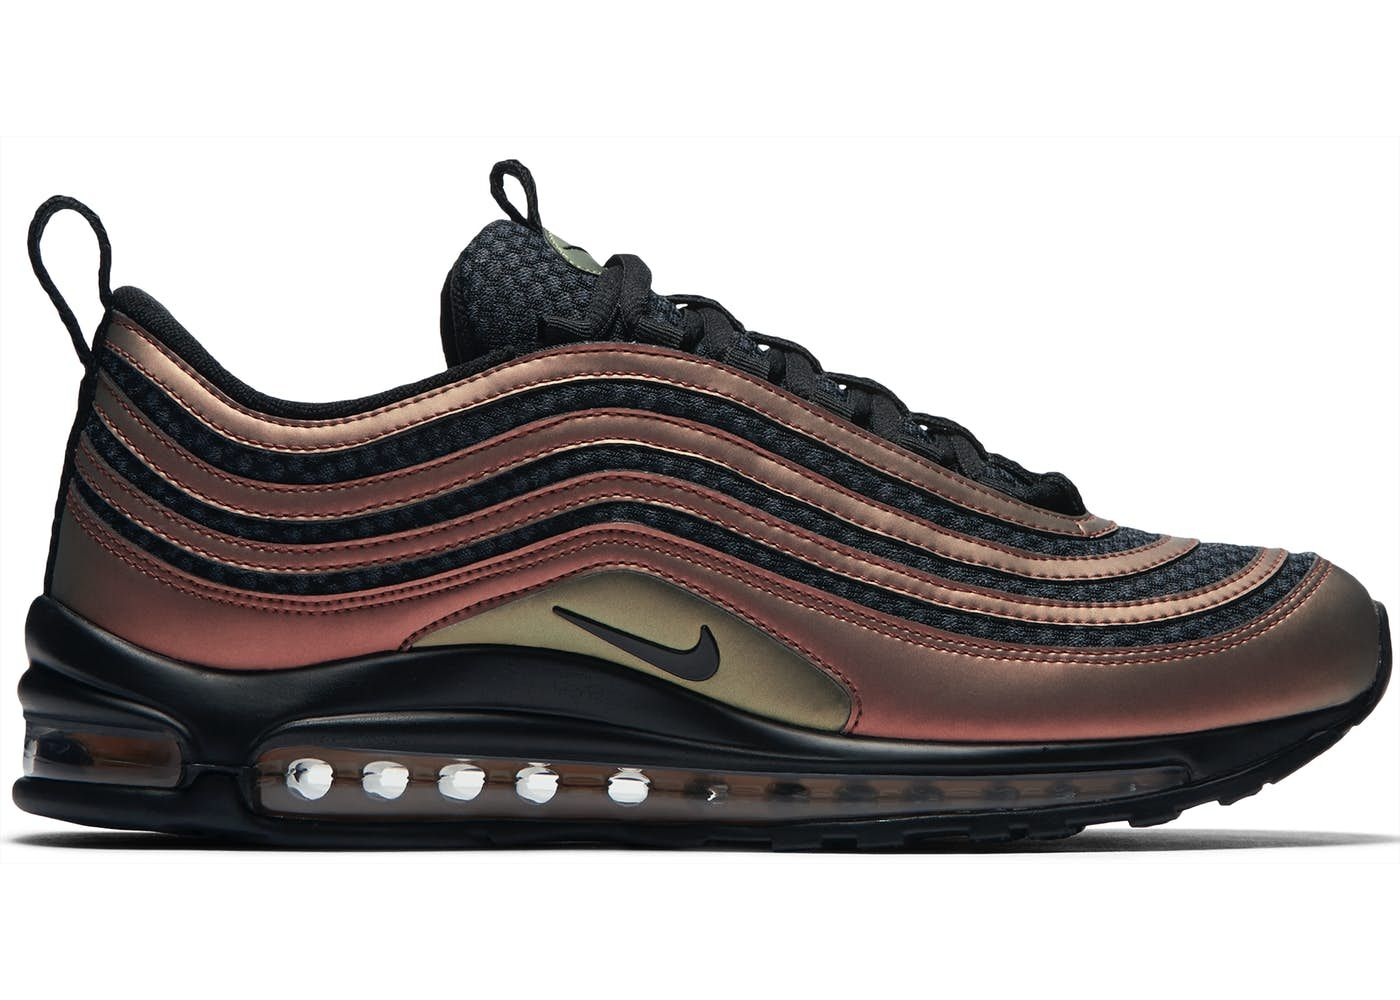 Skepta's Nike Air Max 97 Sk: What They Cost And Where To